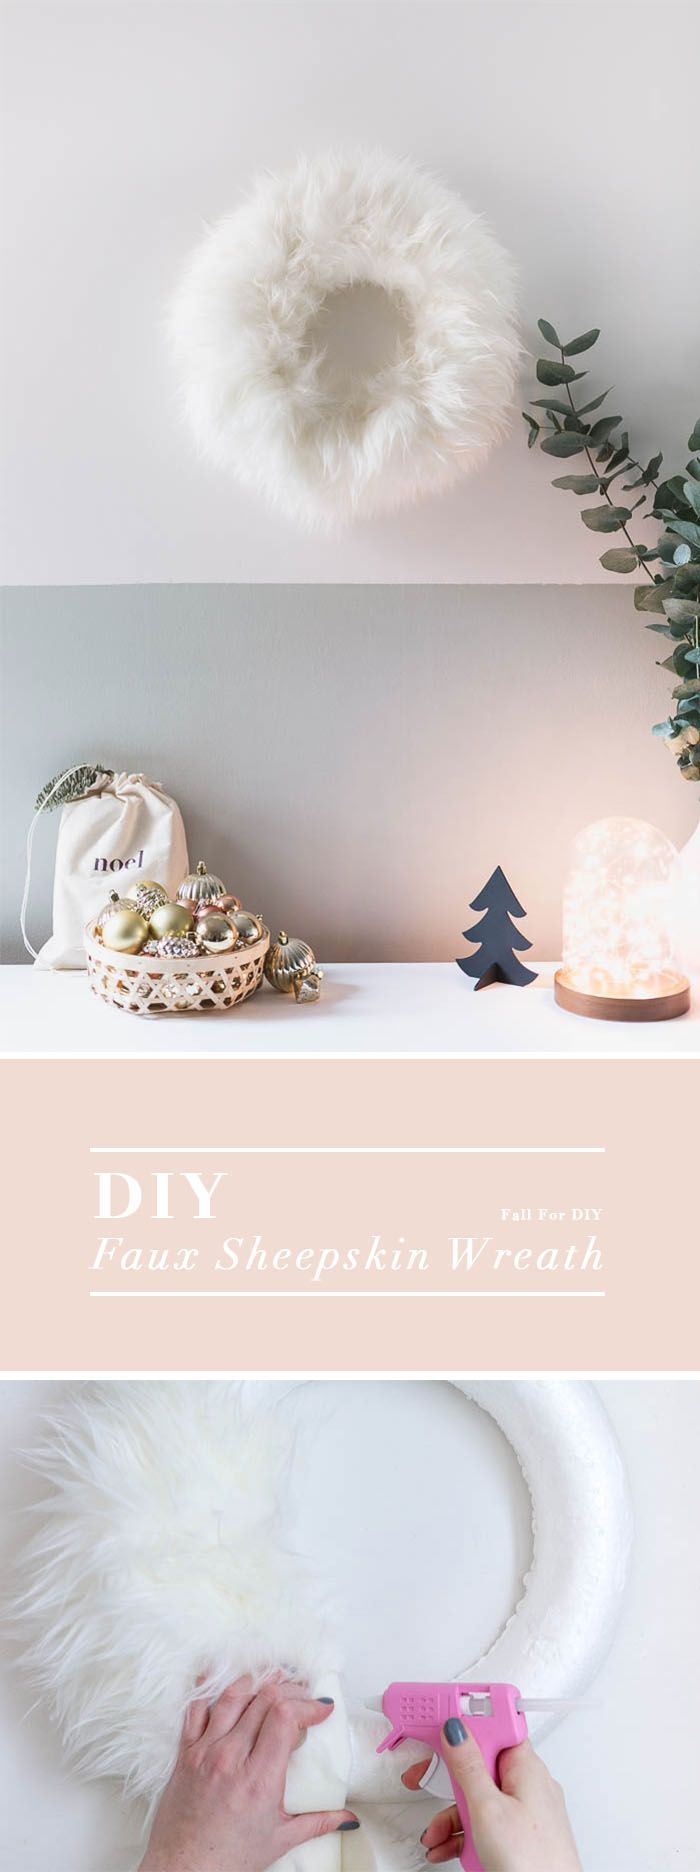 Make this DIY Faux Sheepskin Christmas Wreath. The perfect winter accessory for the run up to the festive season.